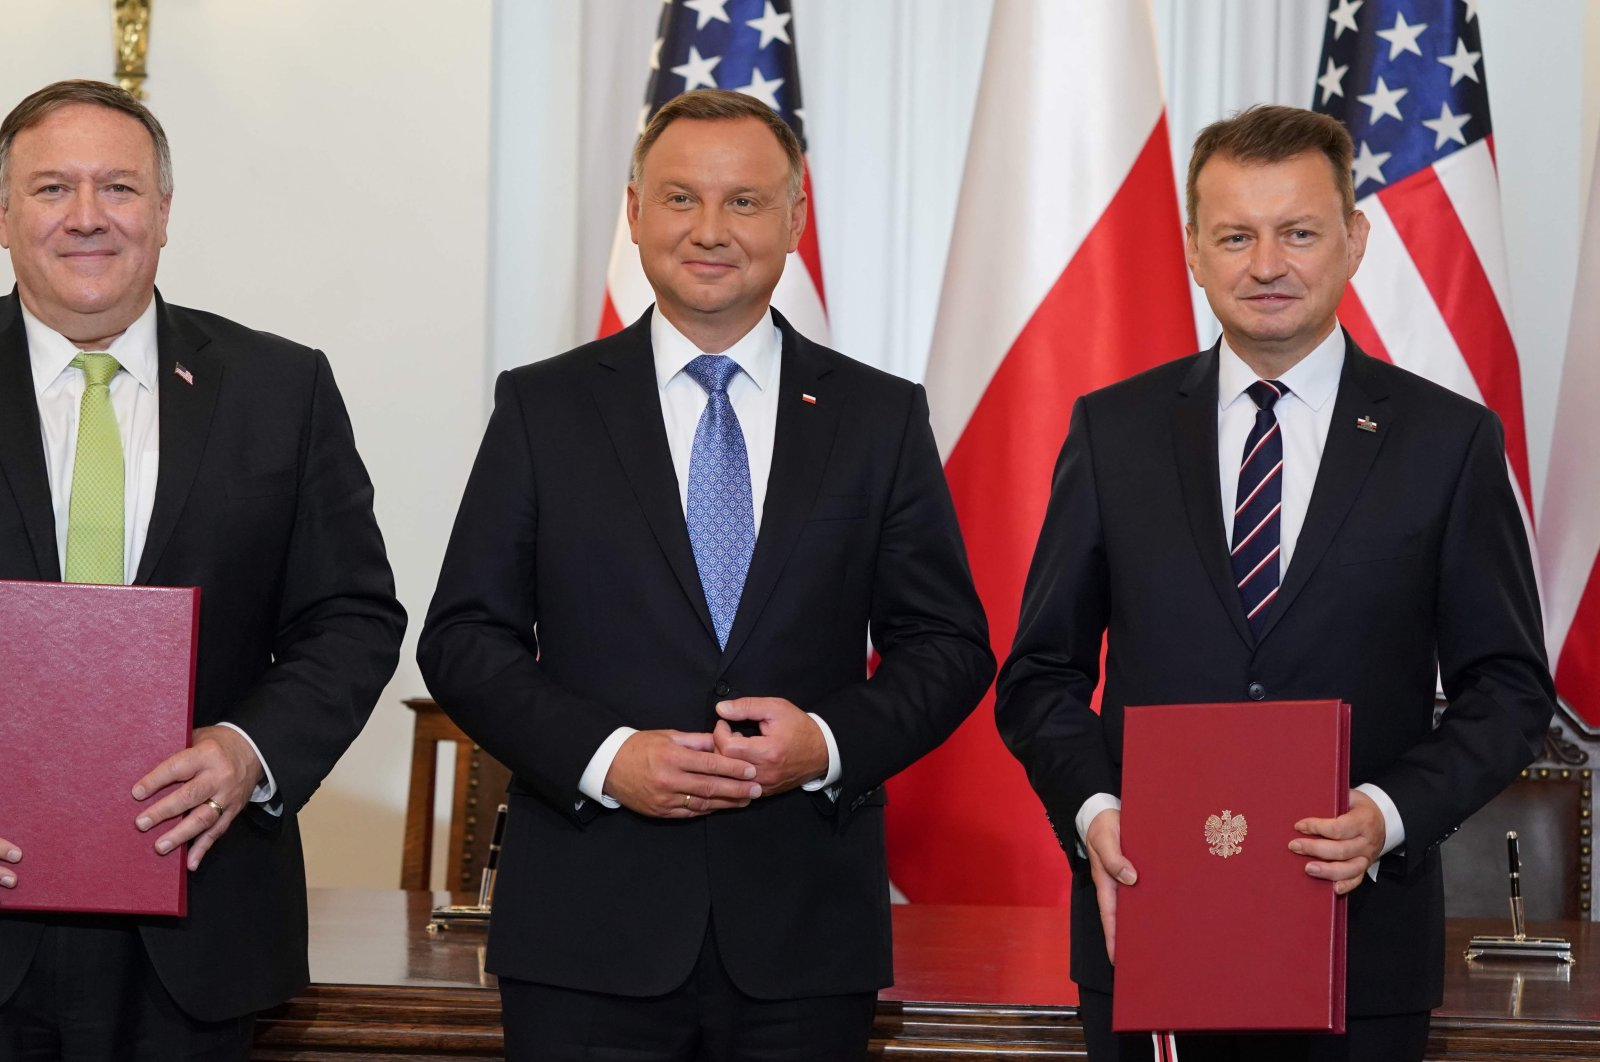 (L-R) US Secretary of State Mike Pompeo, Polish President Andrzej Duda and Polish Minister of Defence Mariusz Blaszczak pose for a picture after they signed the US-Poland Enhanced Defence Cooperation Agreement in the Presidential Palace in Warsaw, Poland, on August 15, 2020. (AFP Photo)